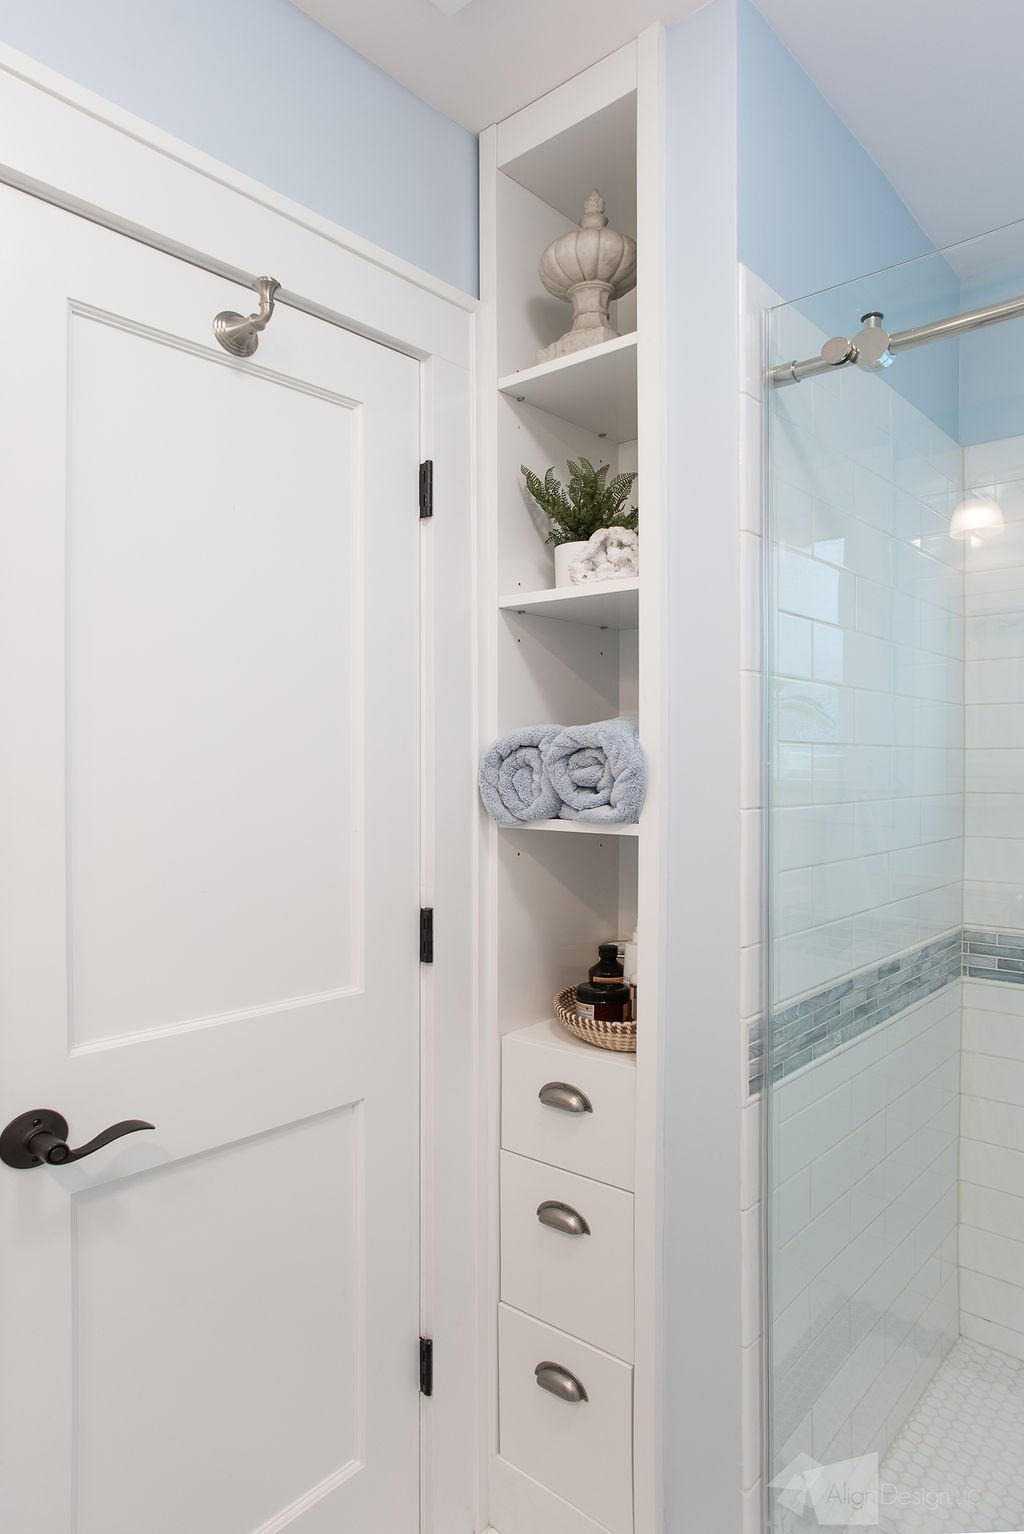 custom shower with glass shower door, custom cabinetry, robe hook and door knob